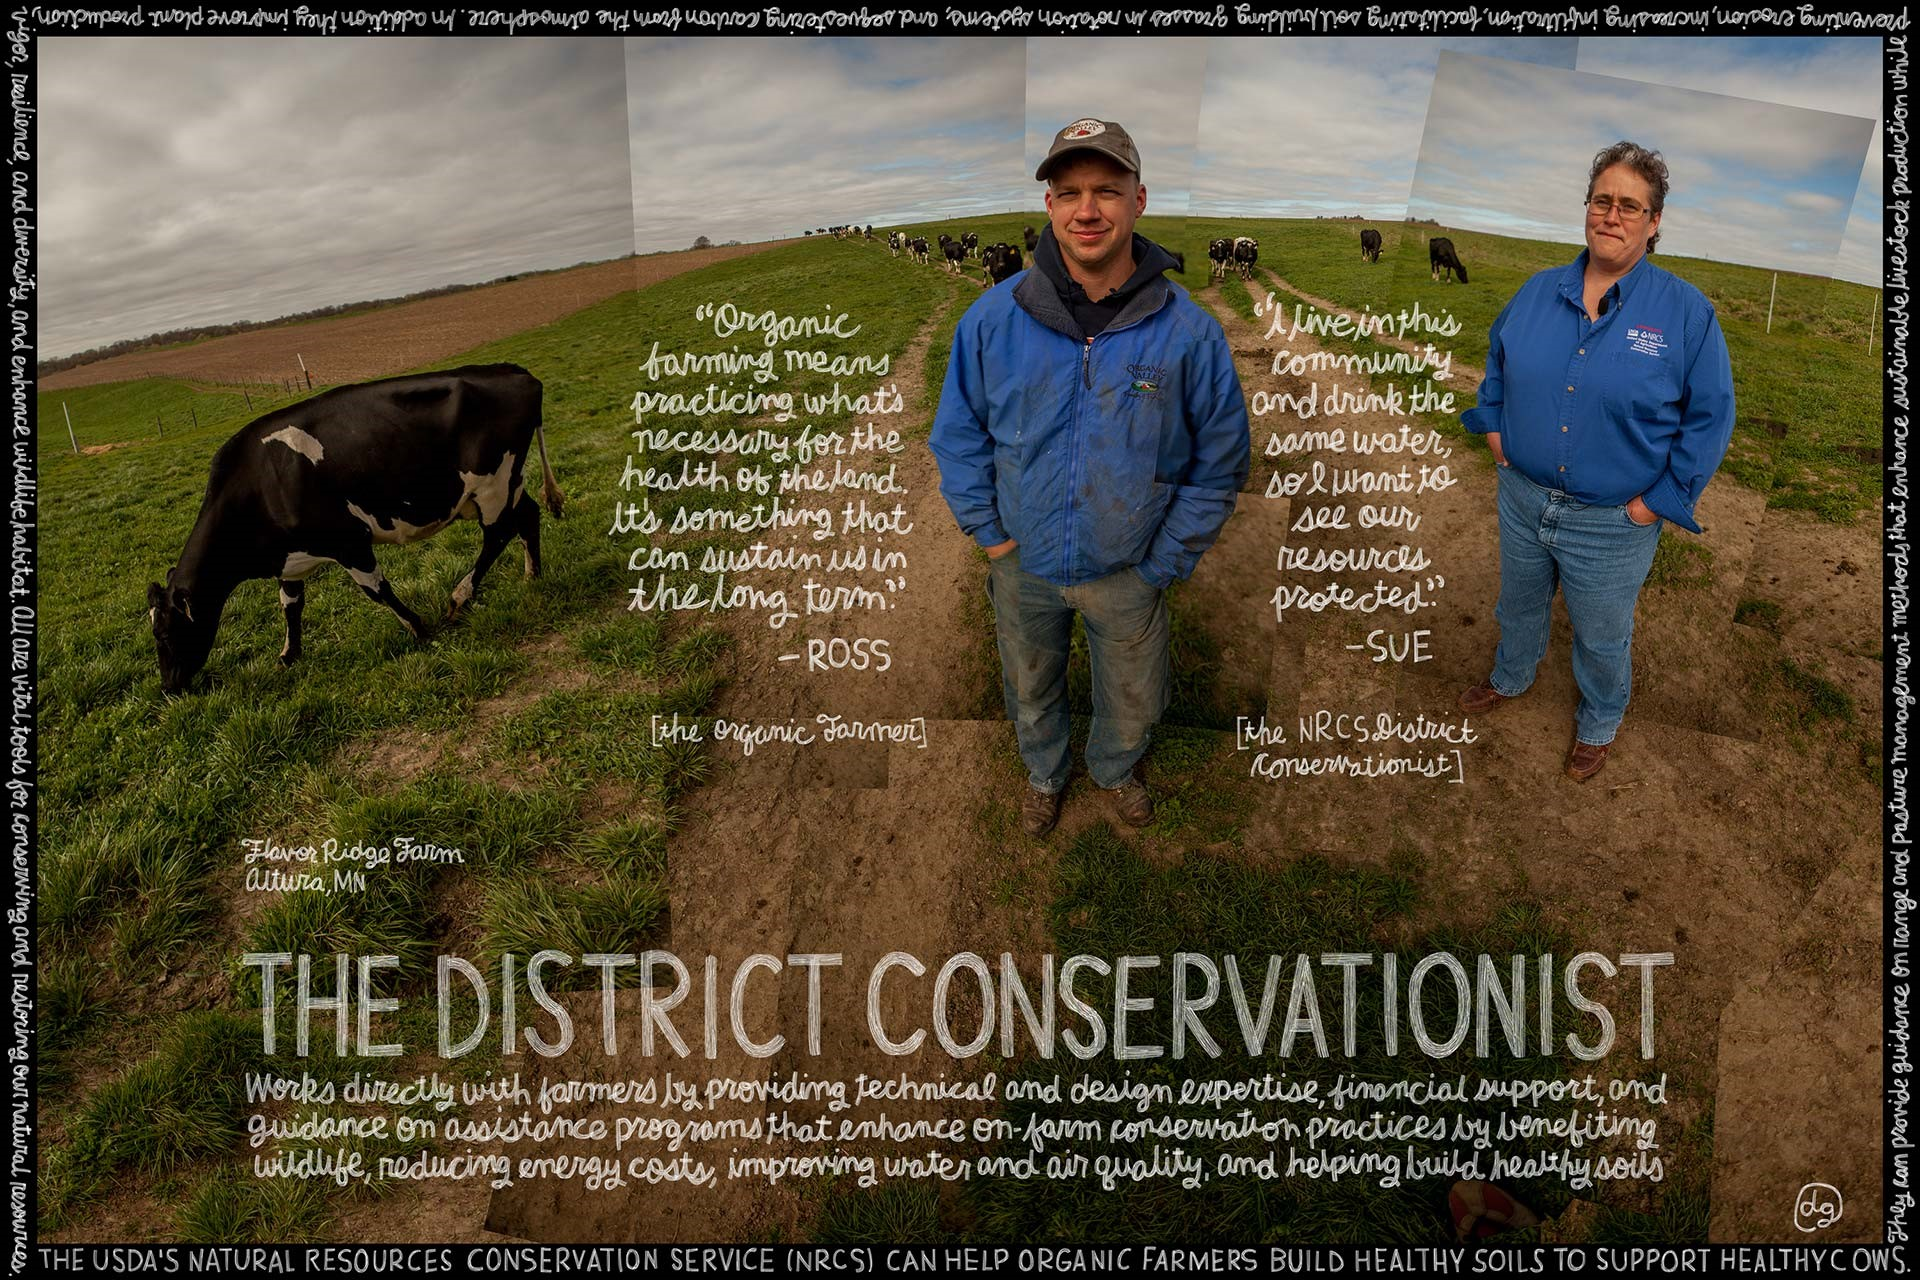 District Conservationist image of two men and a cow